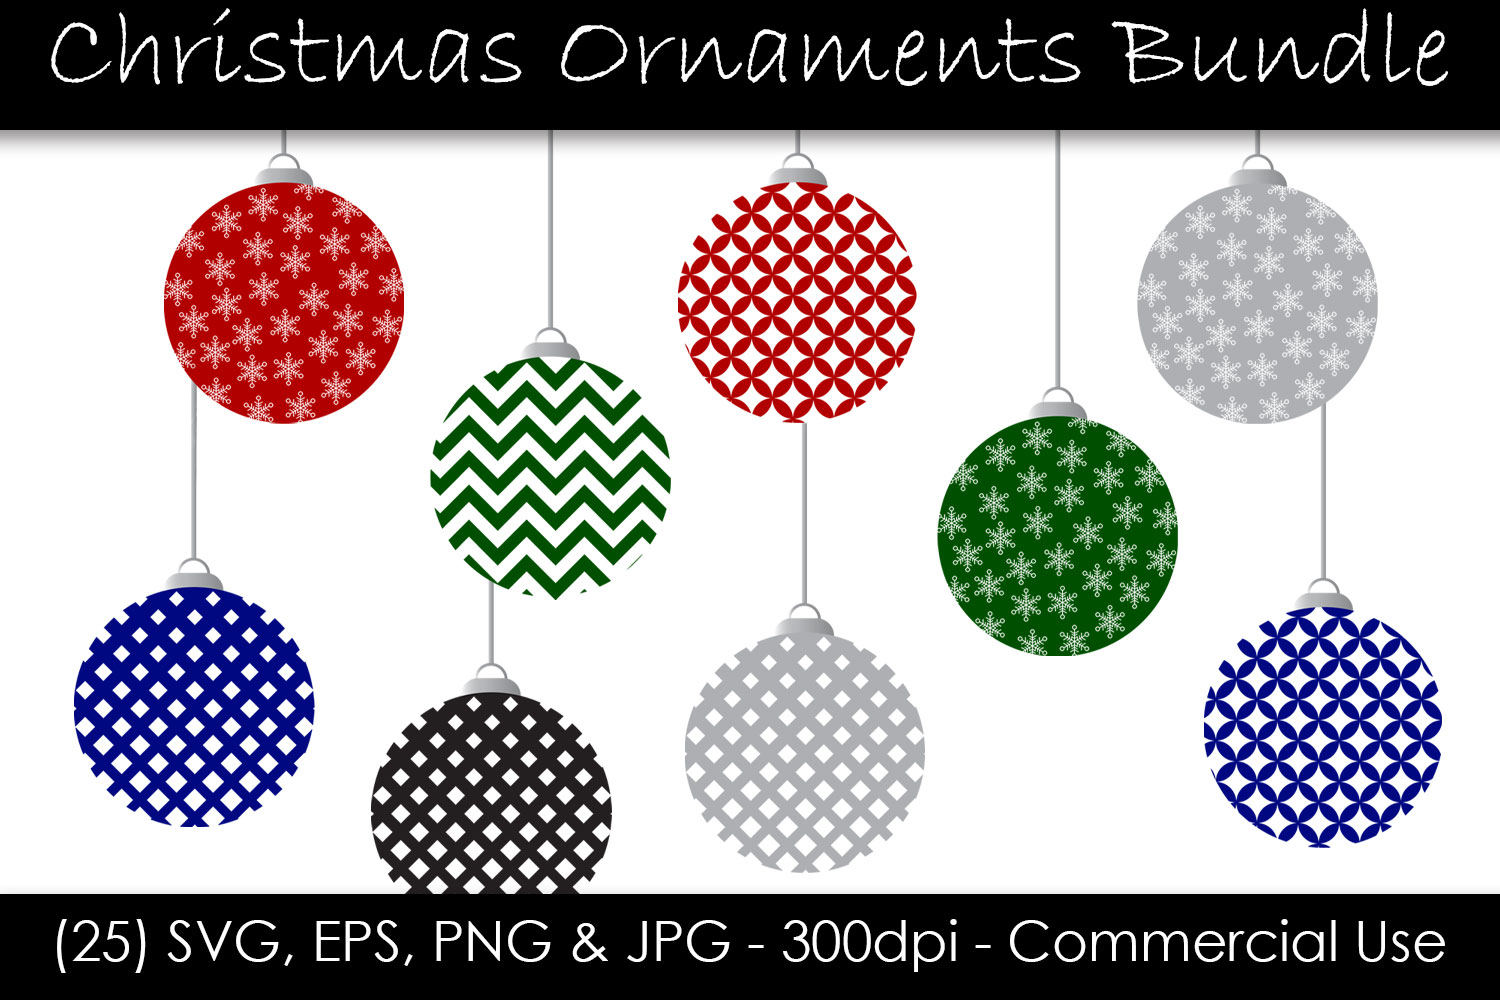 Christmas Ornament Svg Bundle Graphic By Gjsart Creative Fabrica